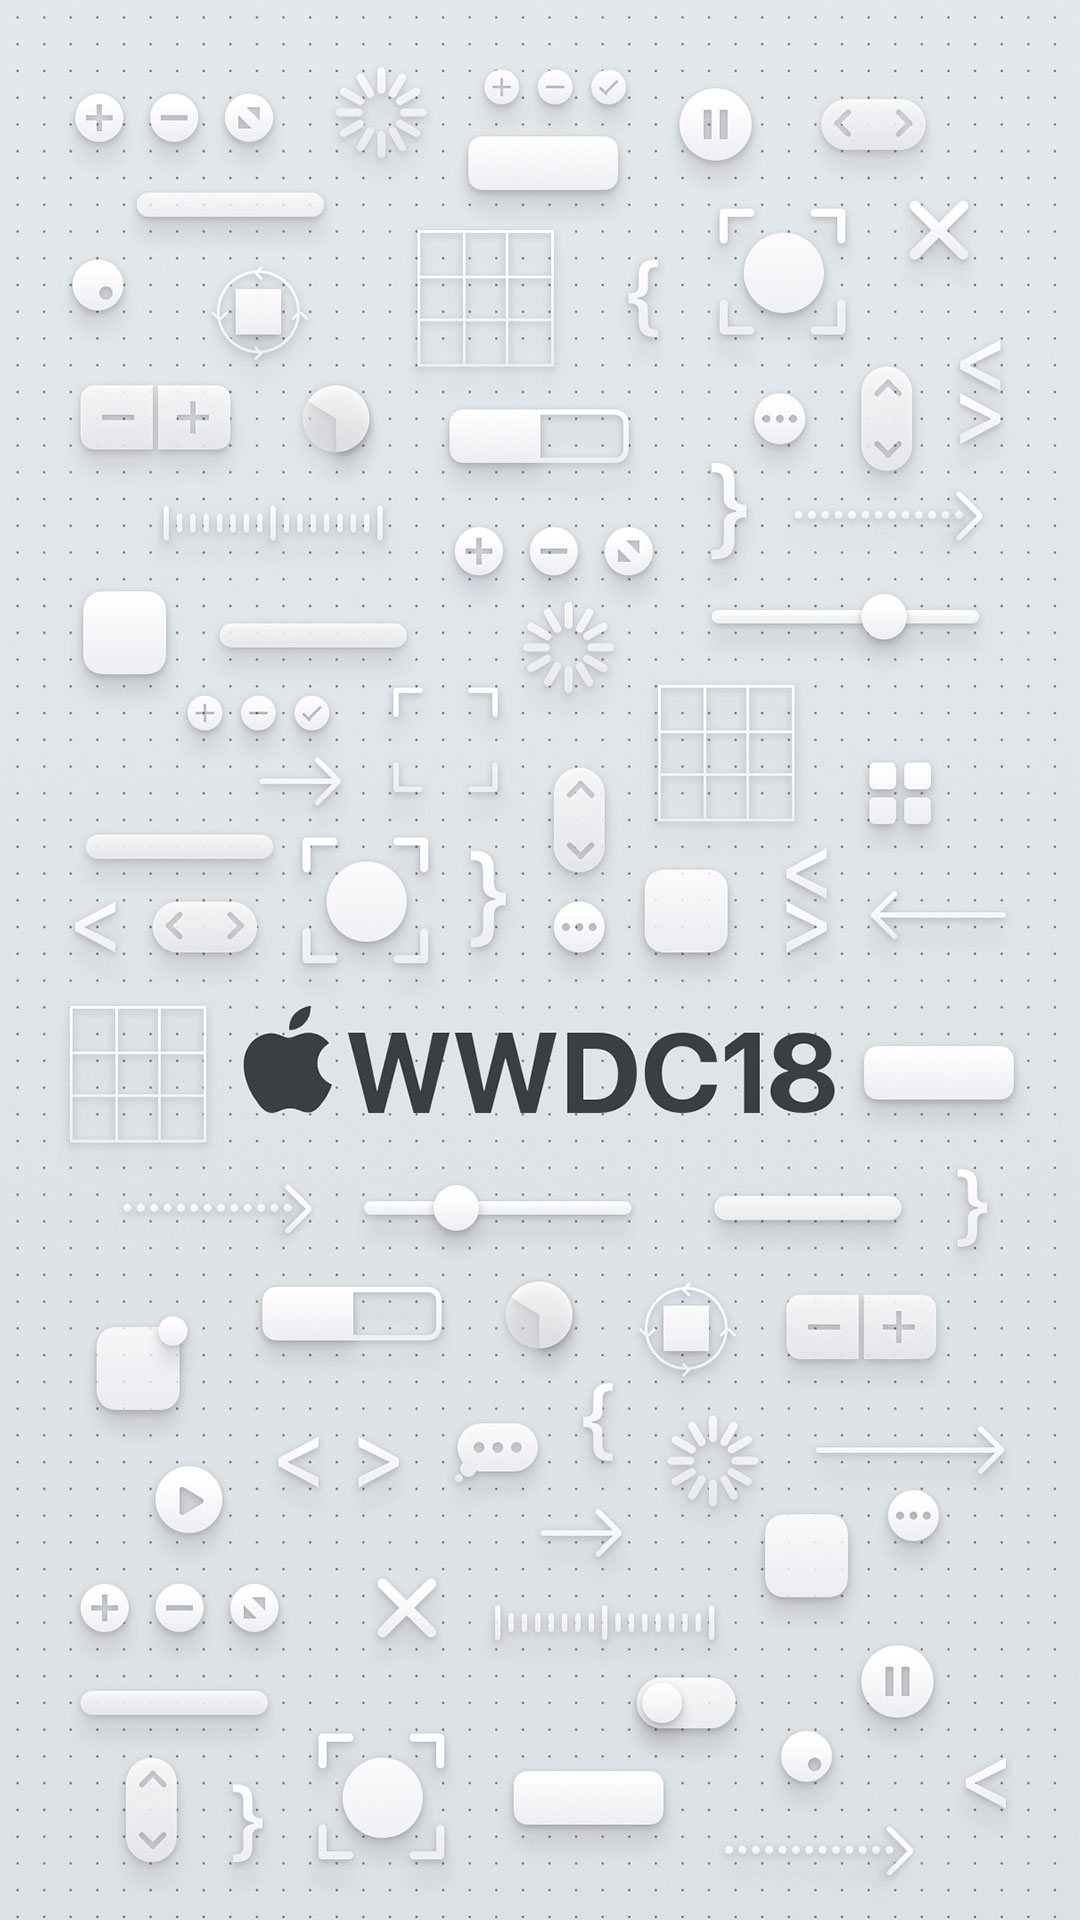 iPhone wallpaper wwdc icons white 3Wallpapers : notre sélection de fonds d'écran du 16/03/2018